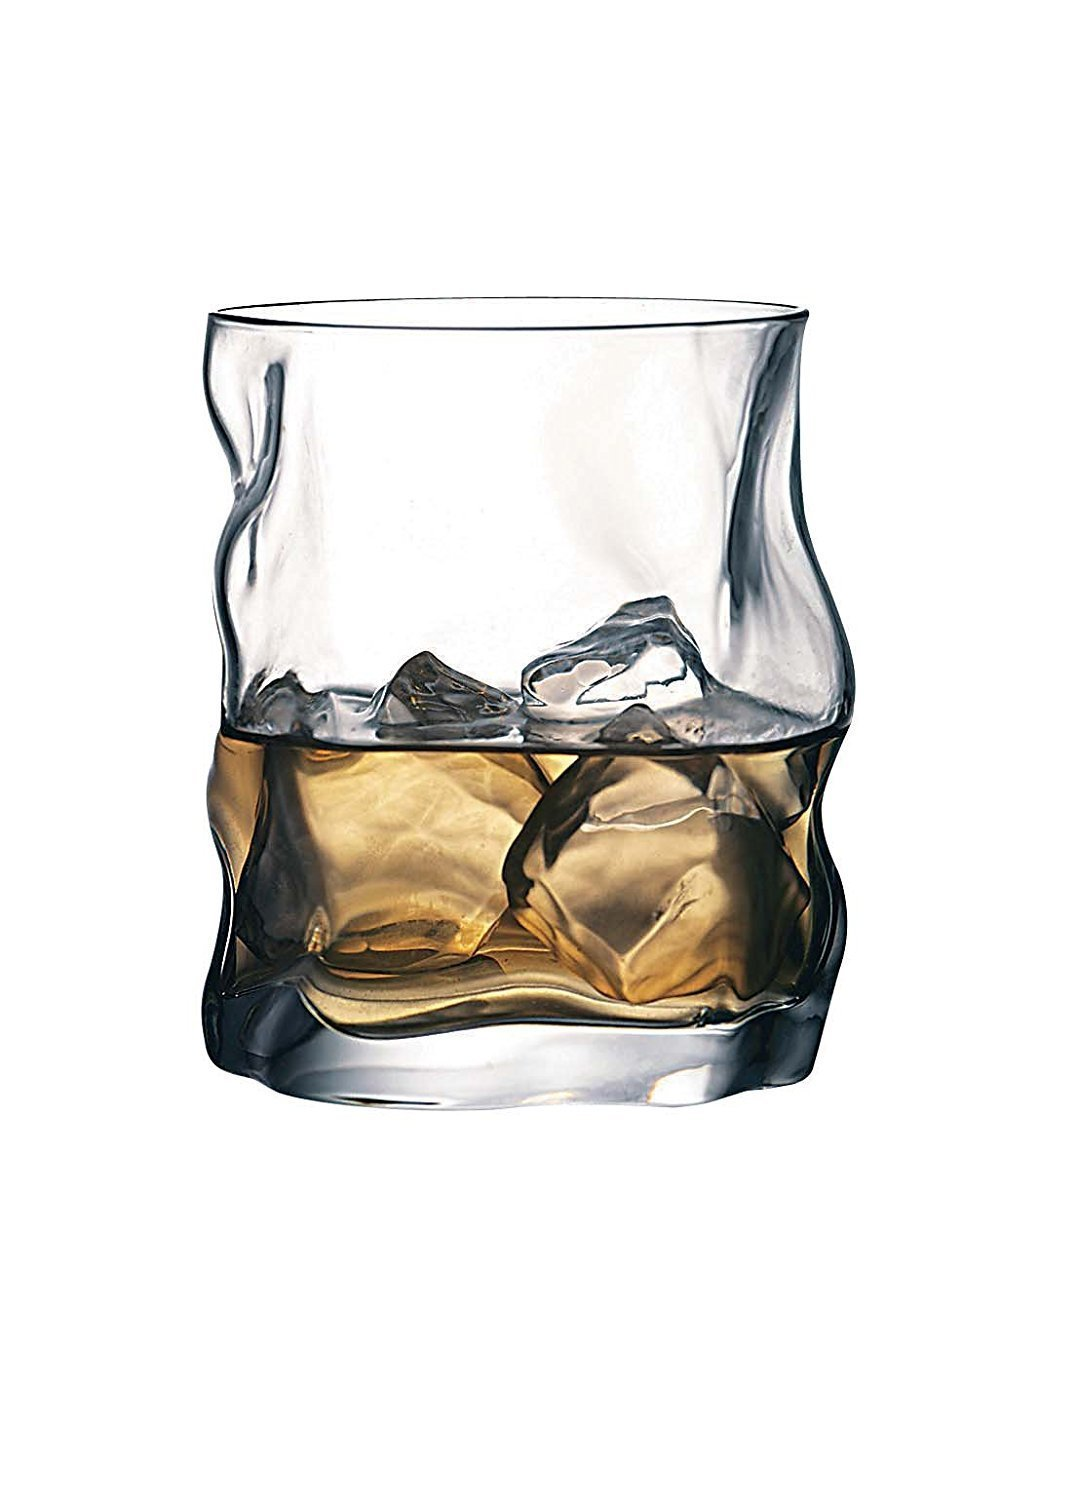 Bormioli Rocco Sorgente Whisky Glasses Set of 2 420ml Unique Design EASYGIFT 3.40350